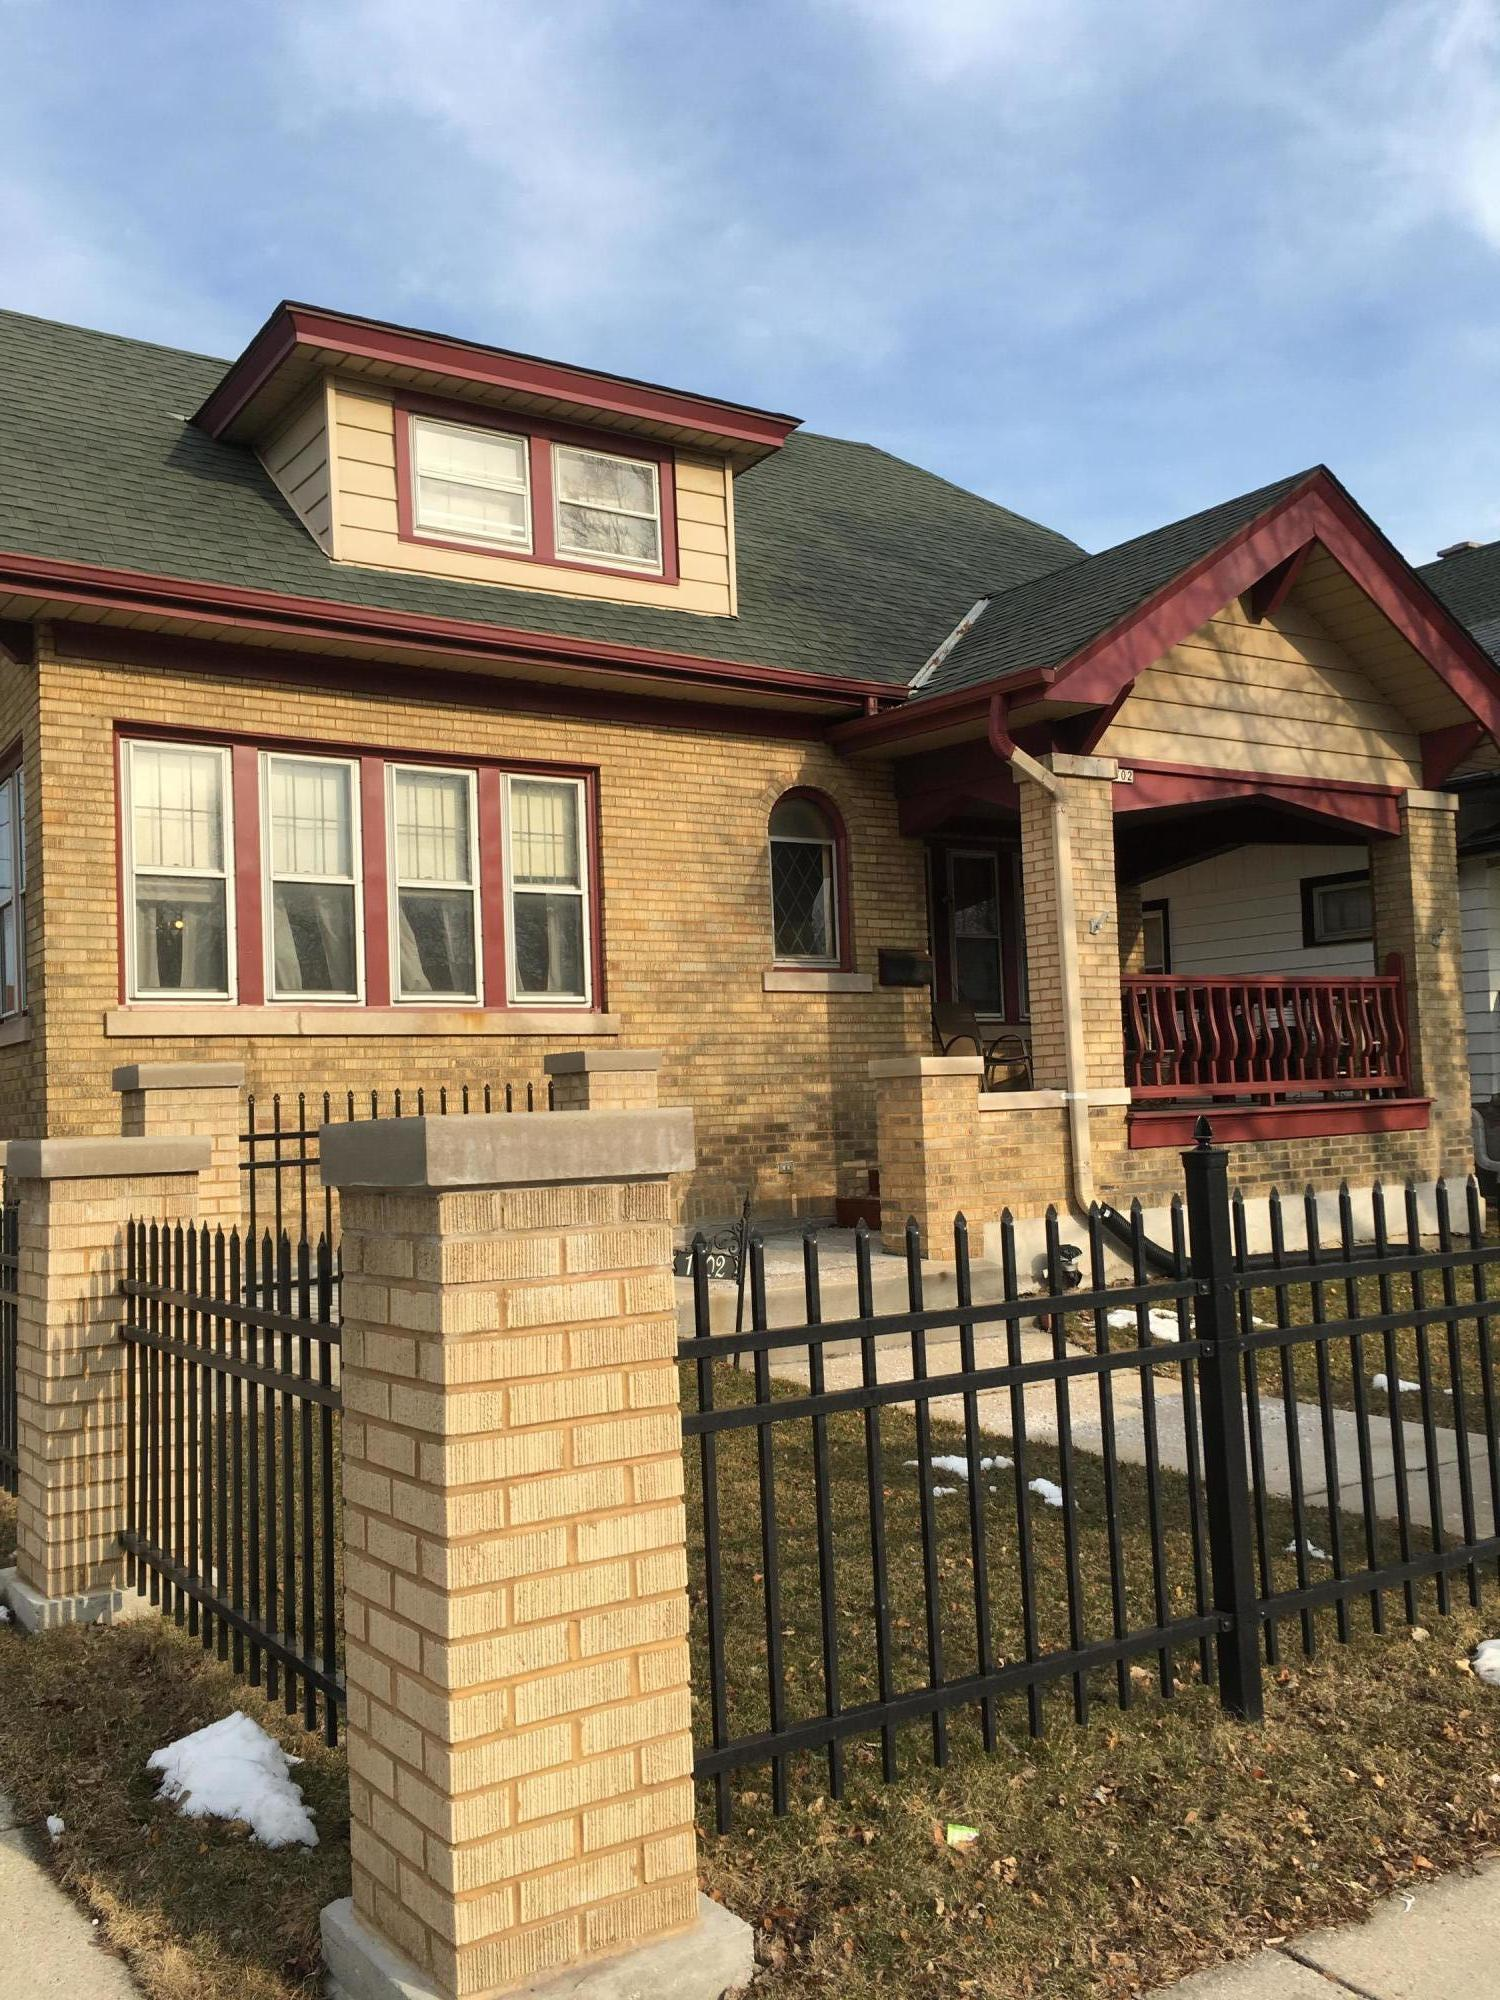 1702 Layton Blvd, Milwaukee, Wisconsin 53215, 5 Bedrooms Bedrooms, 9 Rooms Rooms,3 BathroomsBathrooms,Single-Family,For Sale,Layton Blvd,1628510